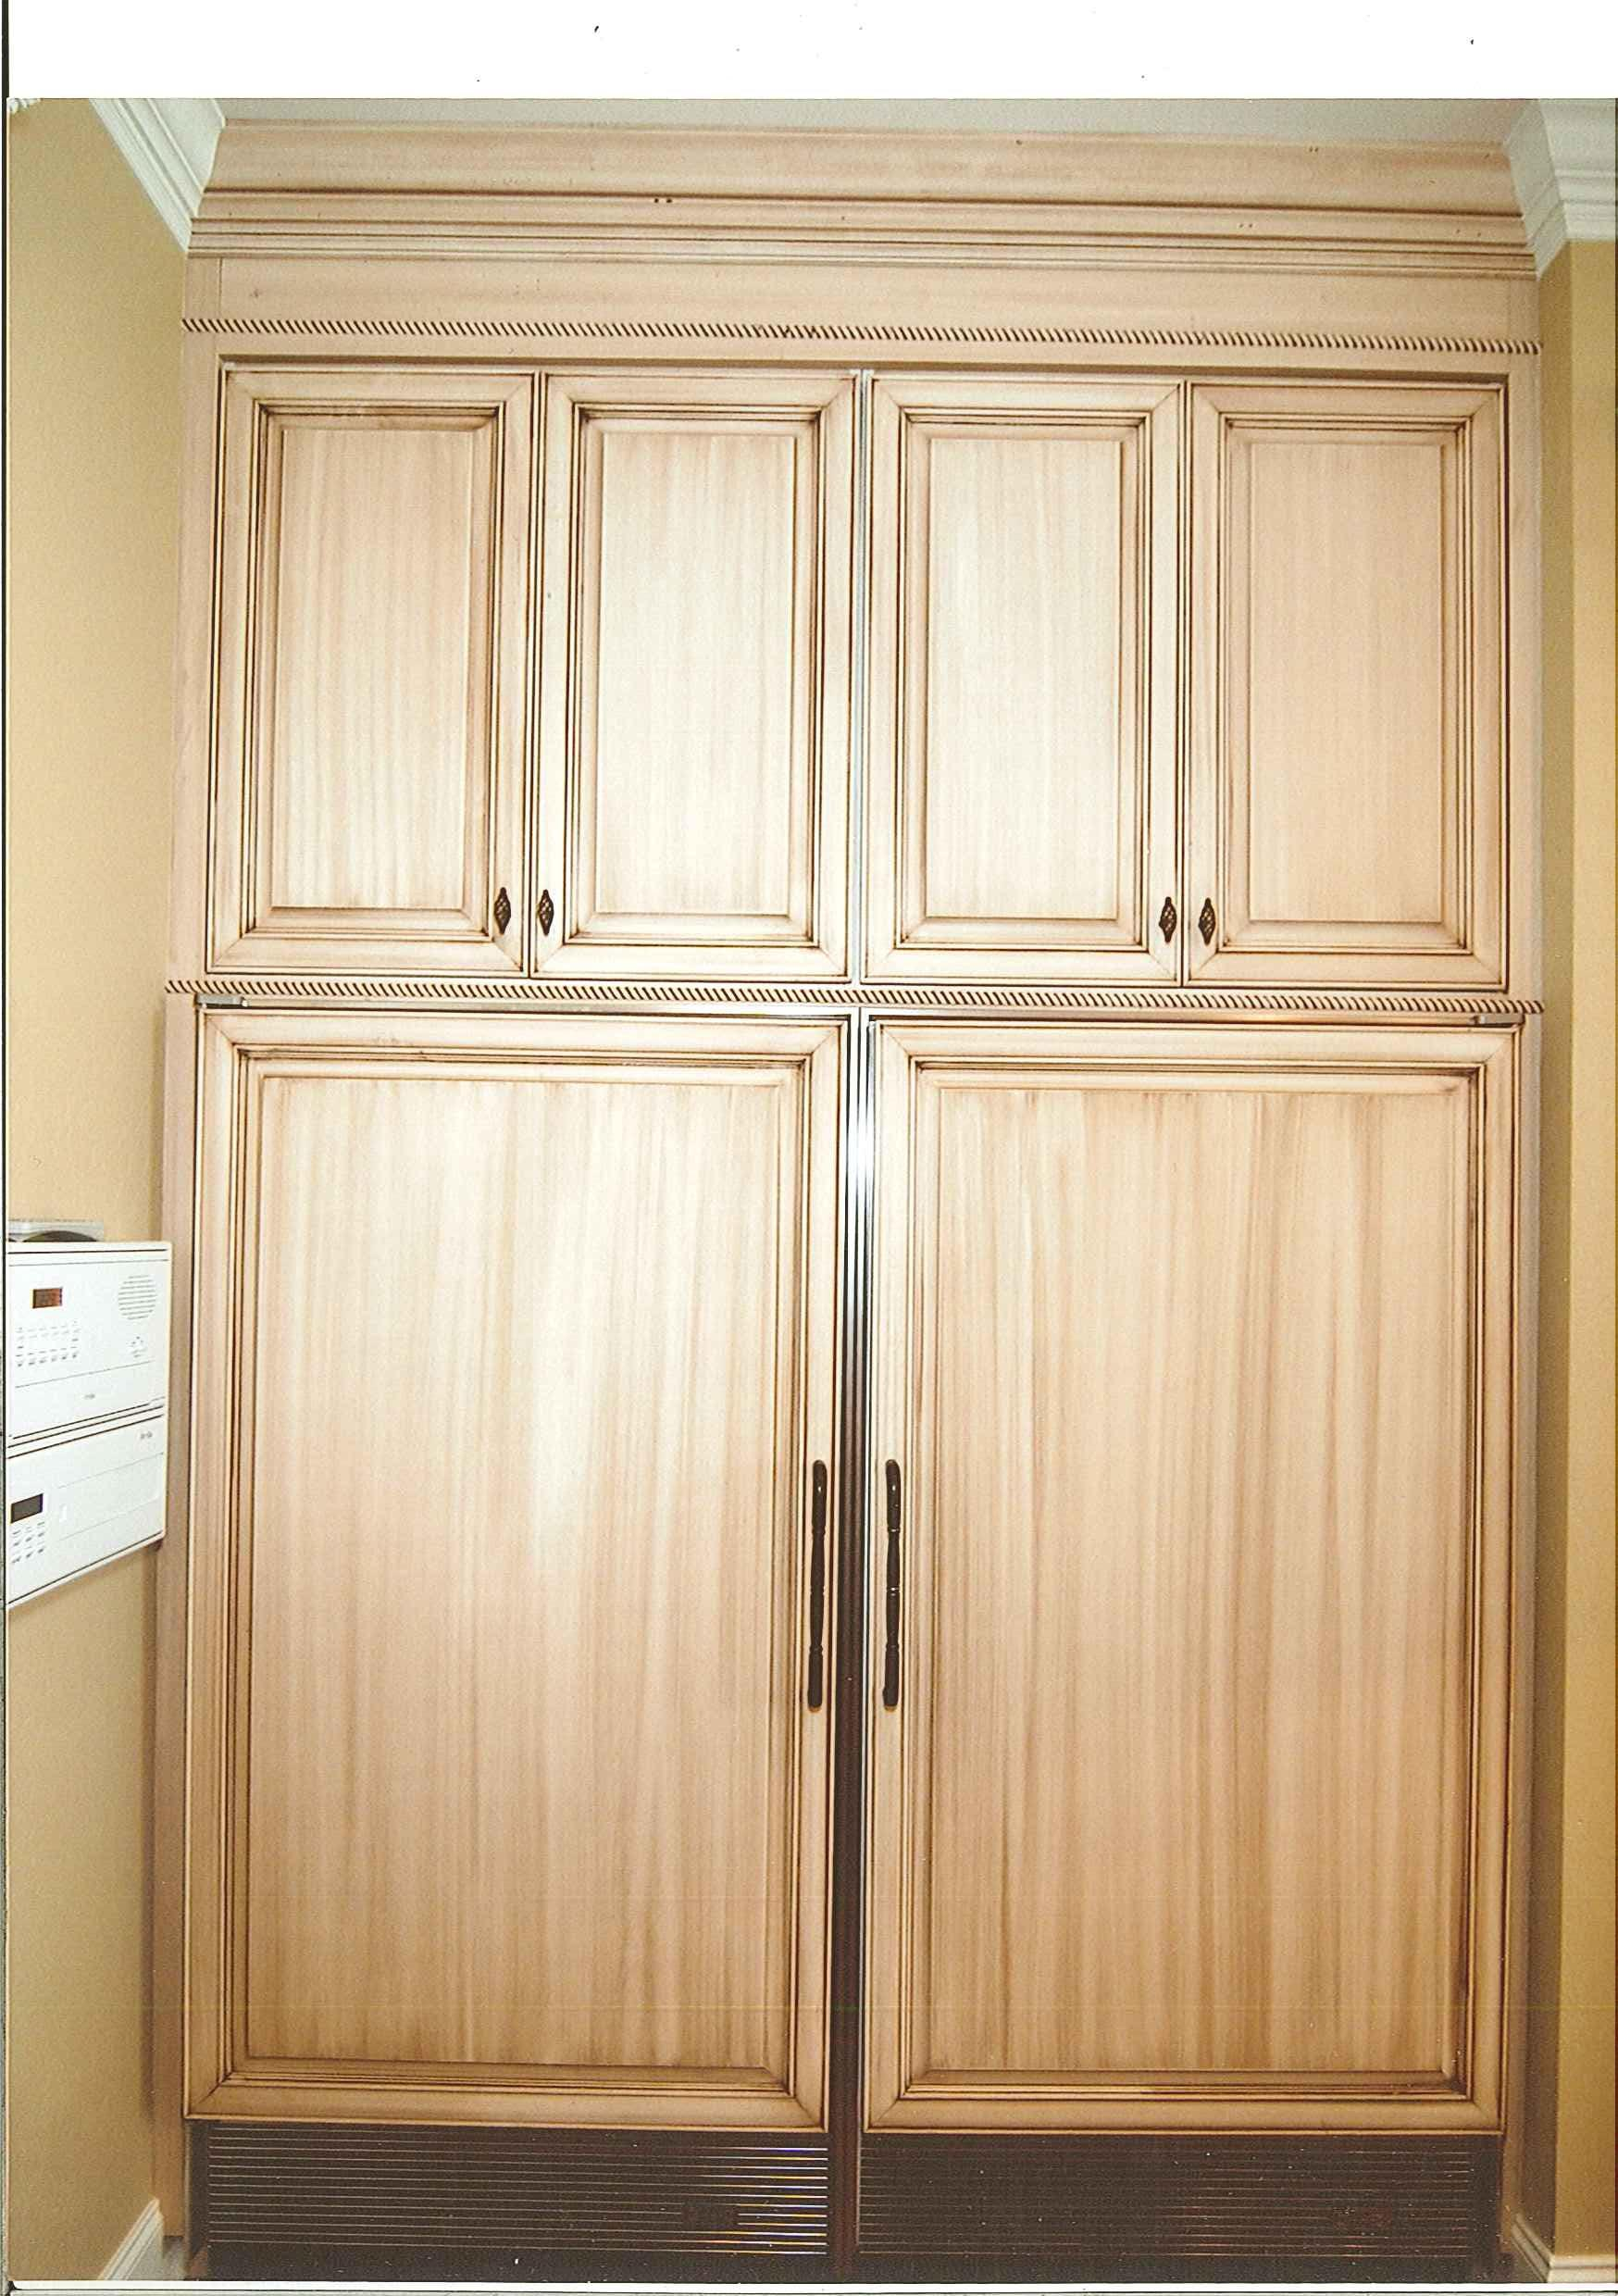 Starting a Custom Kitchen Cabinets Business